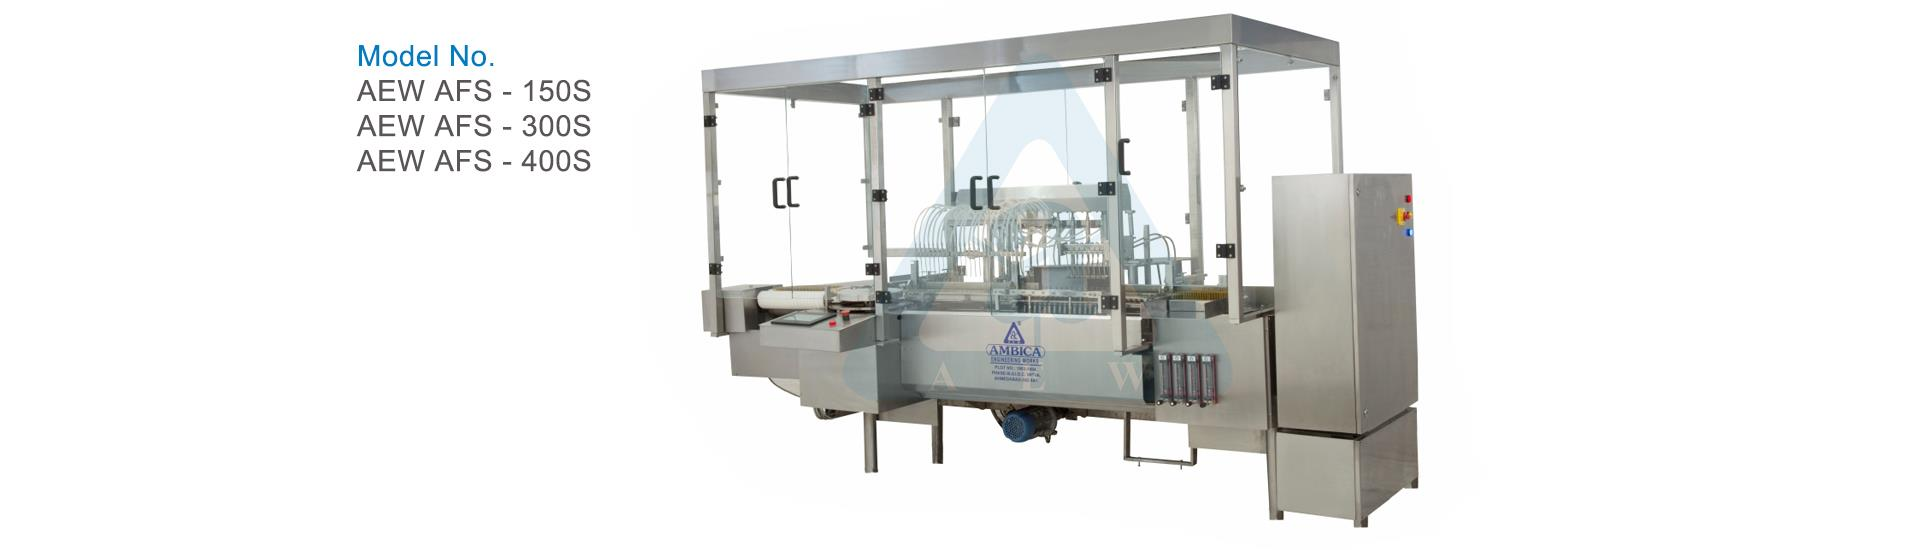 Four Head Ampoule Filling Machine   Ampoule Filling and Sealing Machine - Manufacturer - Ambica Engineering Works - Ahmedabad   High Speed Ampoule Filling Machine   For Ampoule Filling machine Contact - Ambica Engineering Works - Ahmedabad - Gujarat - India.   Four Head Ampoule Filling and Sealing Machine  Six Head Ampoule Filling and Sealing Machine  Eight Head Ampoule Filling and Sealing Machine  Twelve Head Ampoule Filling and Sealing Machine   Searching for Ampoule Filling Machines manufacturer in Ahmedabad, Gujarat, India - Ambica engineering works is the Leading Manufacturer, Supplier and Exporter of All kind of Pharma Machines across the Globe.   Four Head Ampoule Filling machine - Ampoule Filling and sealing Machine - High Speed - Ahmedabad - Ambica Engineering Works - Gujarat - India - Pharma Machineries - Manufacturer.